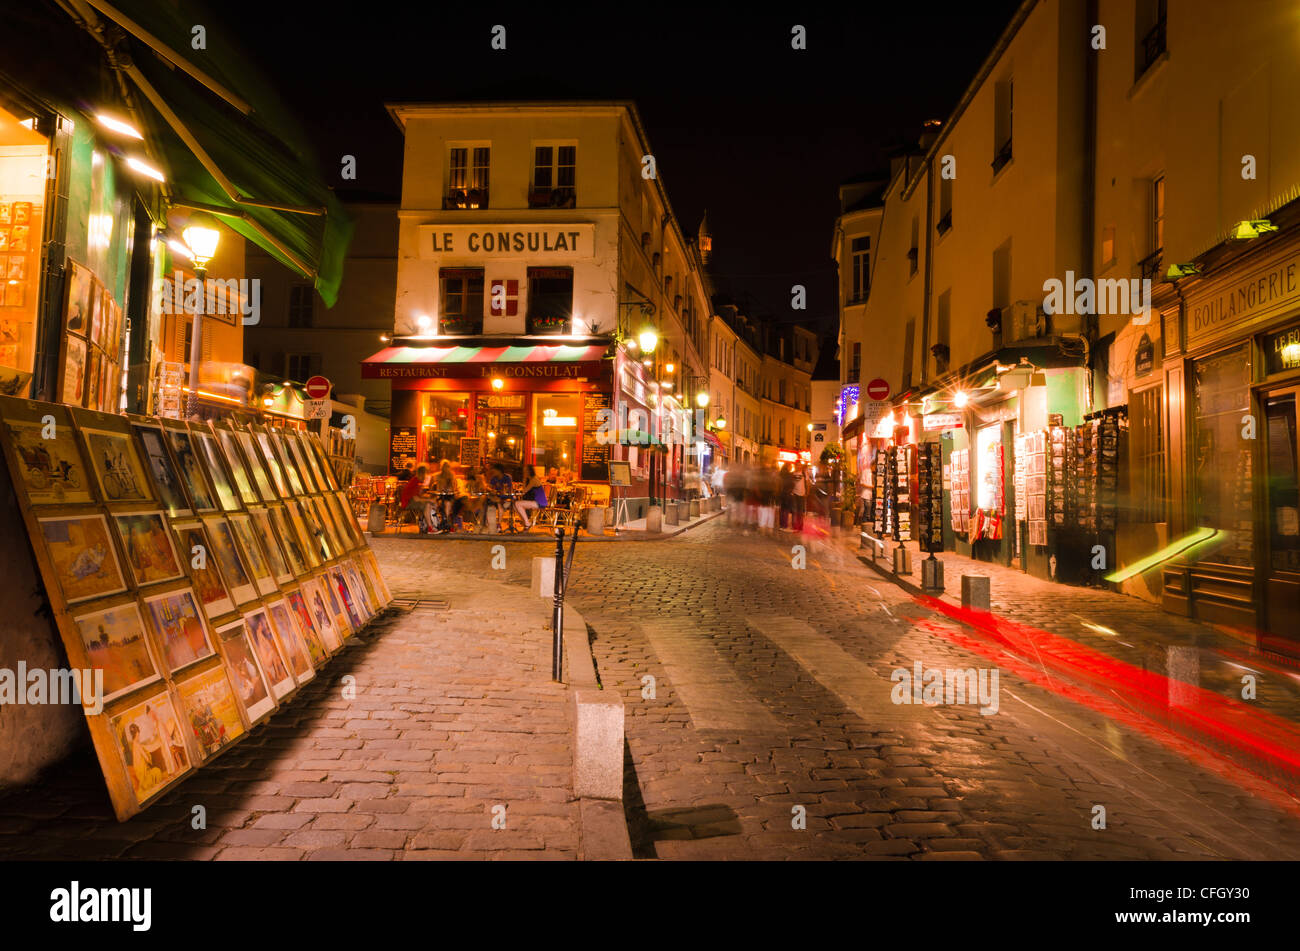 Le consulat restaurant montmartre paris france stock for Le miroir restaurant montmartre